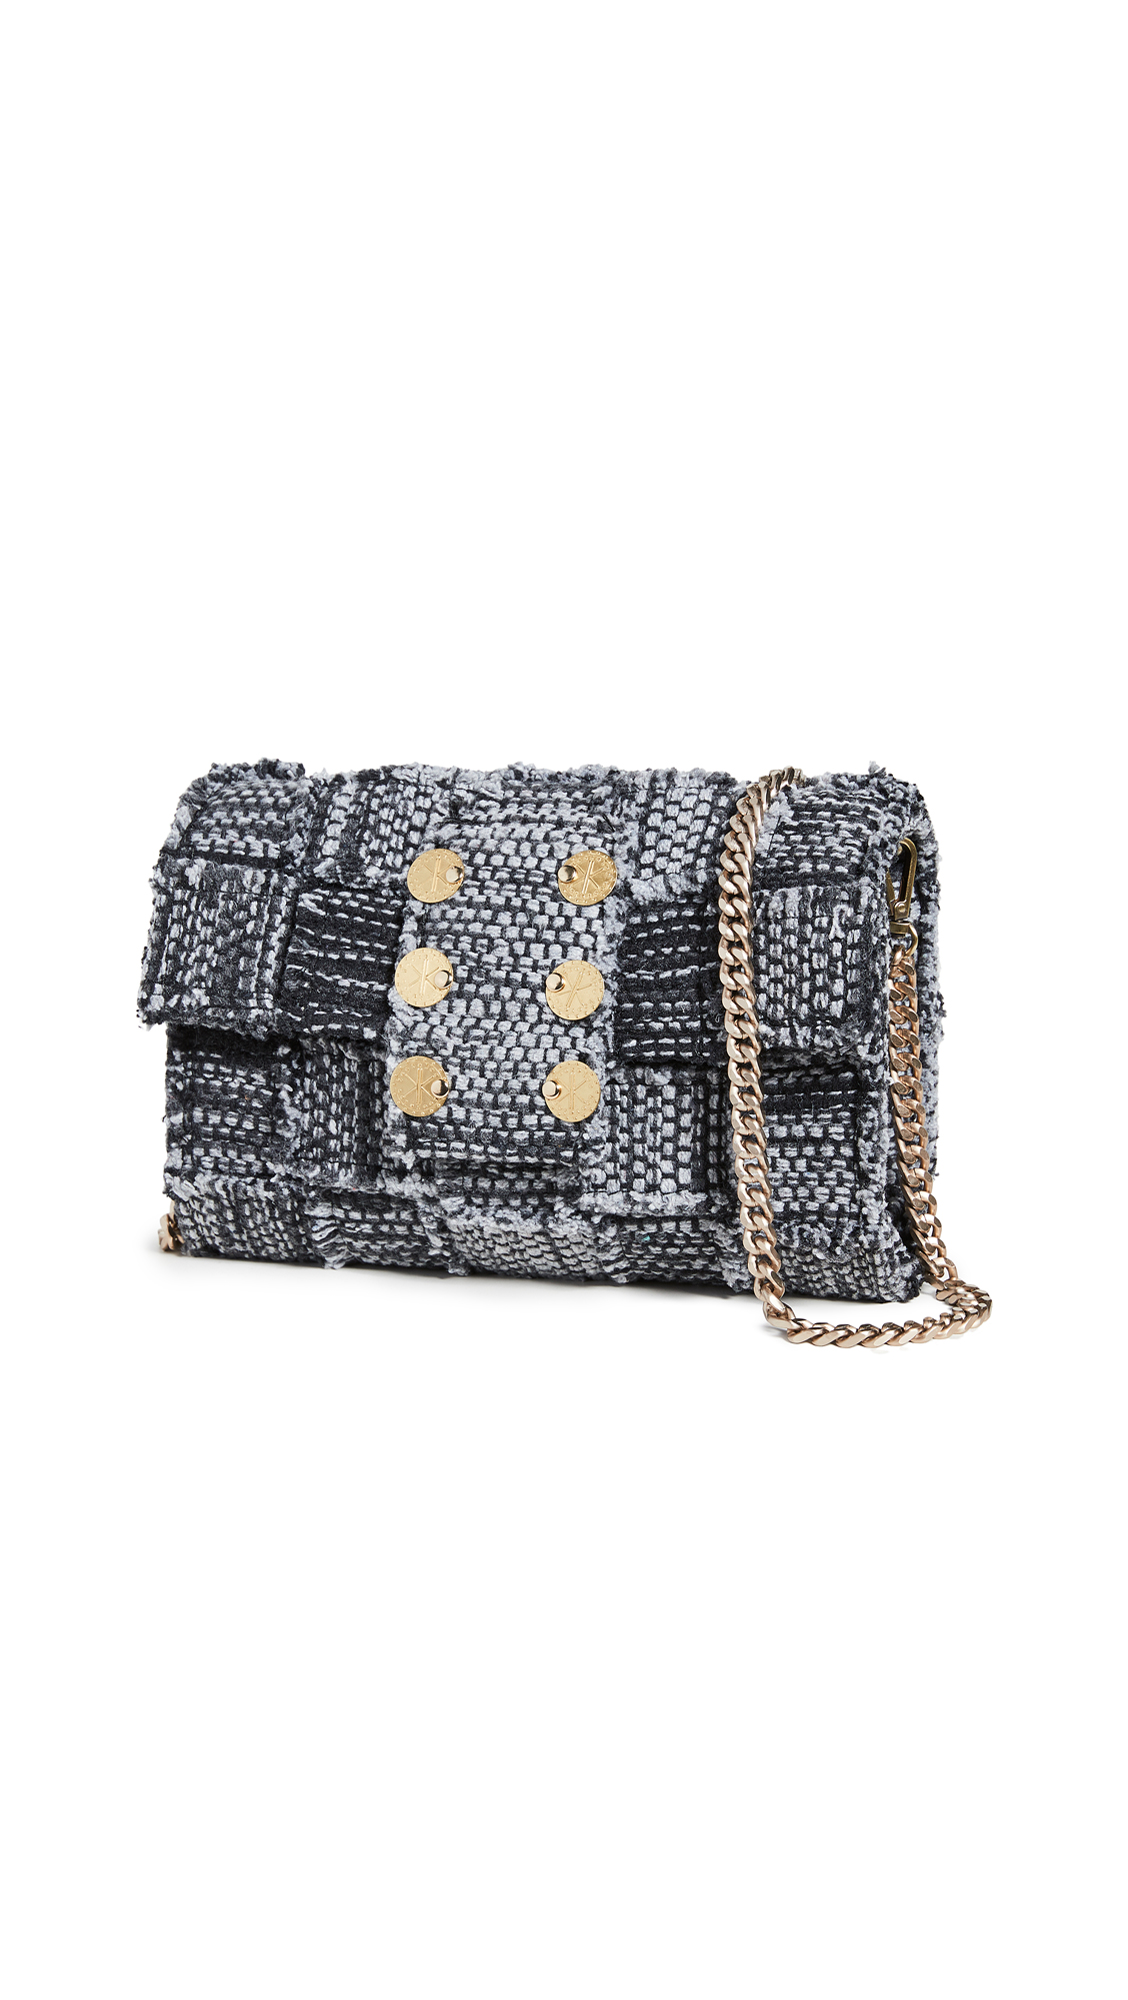 Kooreloo Pixel Orbit Clutch In Black Athena